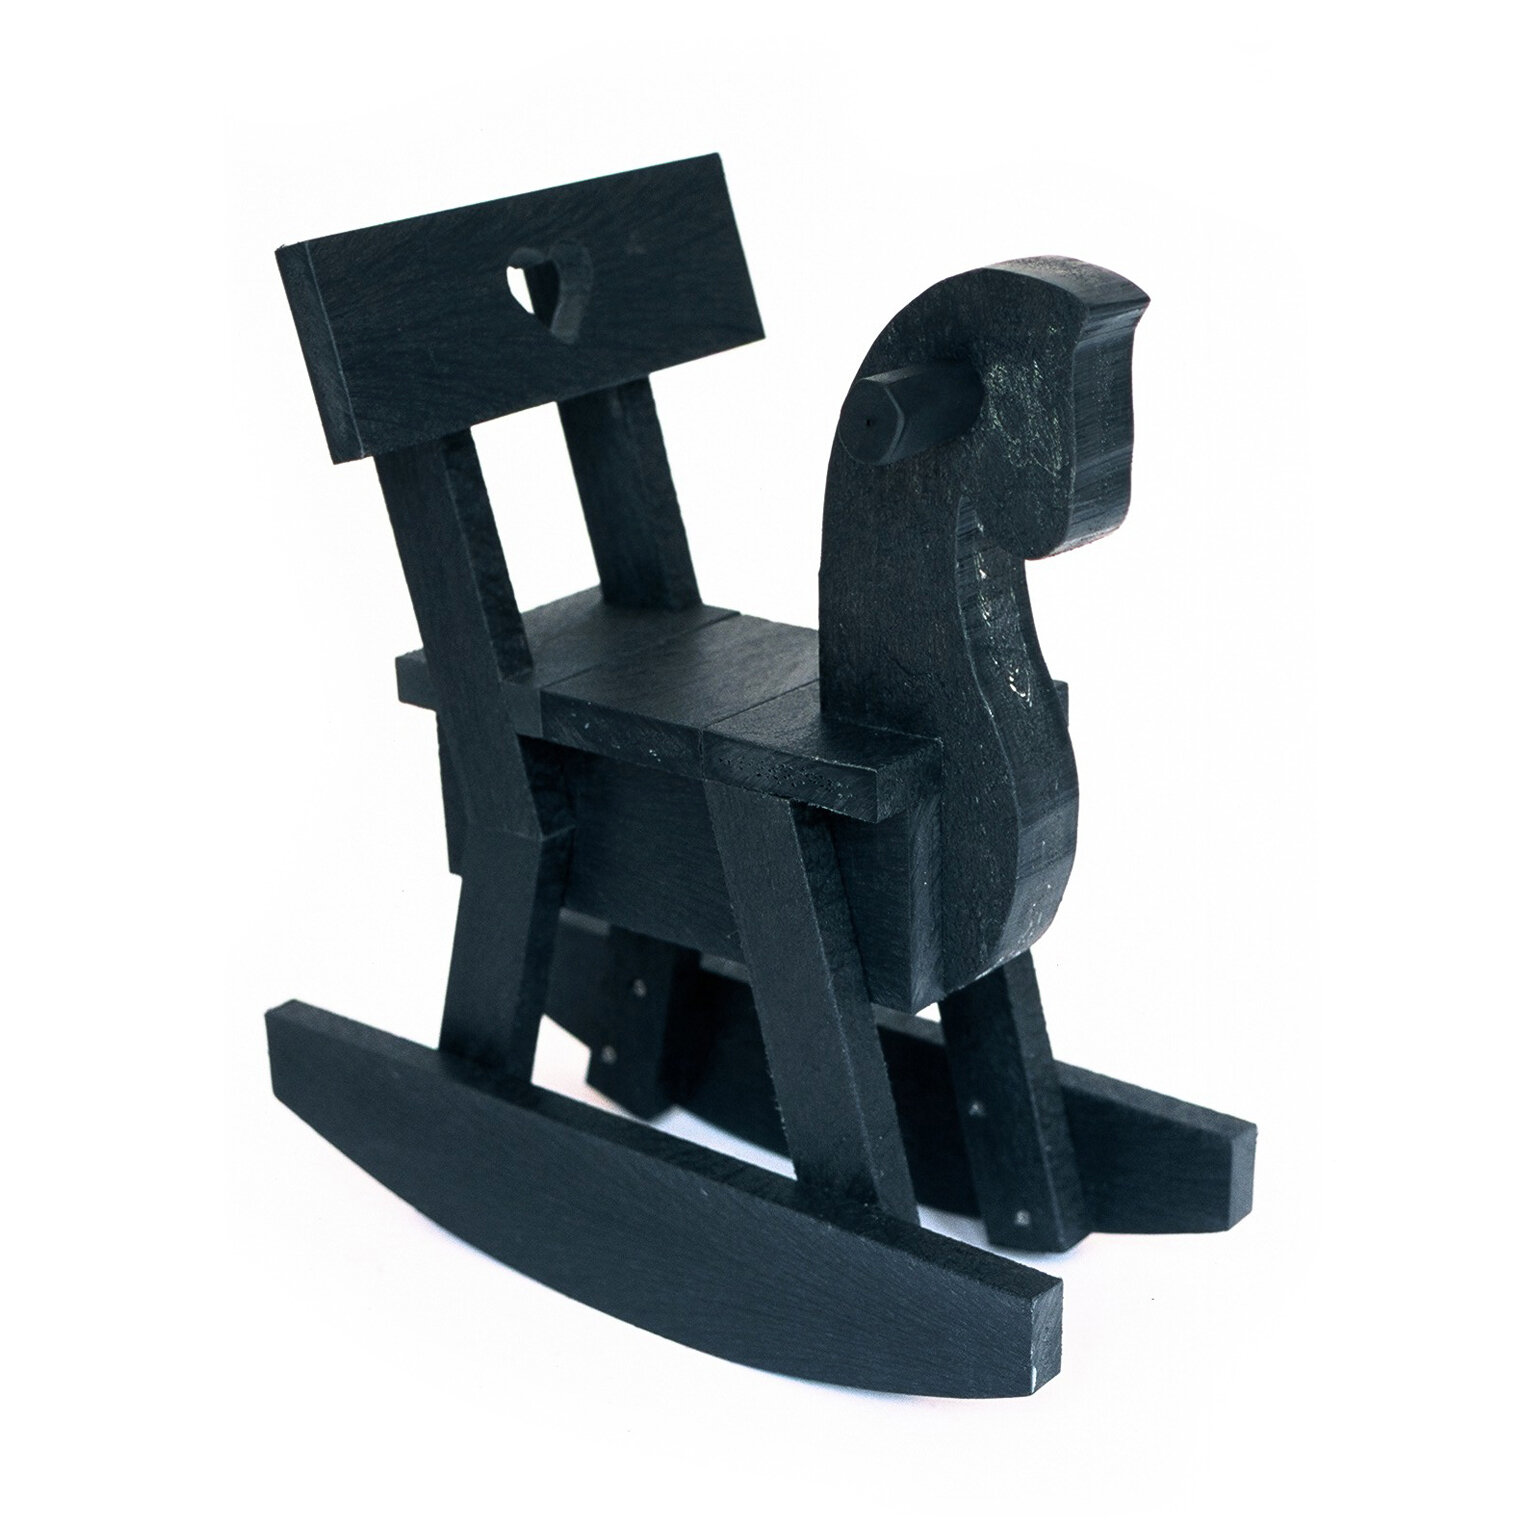 INEKE HANS: HAPPY HORSE ROCKING CHAIR  From black recycled plastic, Ineke Hans designed the Black Beauties collection, including the rocking horse Happy Horse. Resistant to wind, water, salt, acid and UV light.   www.inekehans.com